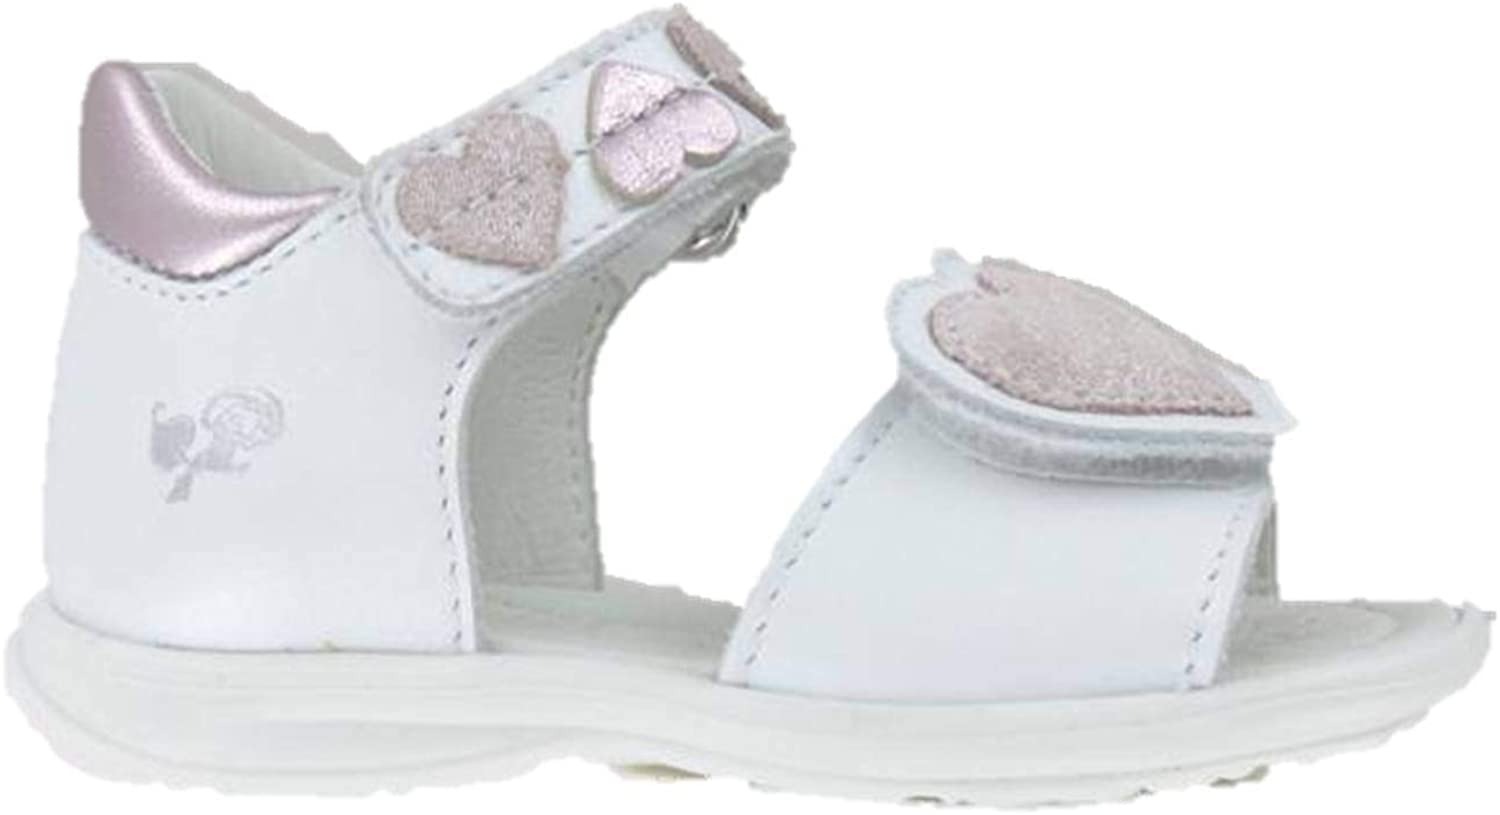 Primigi 3407222 Sandals Leather Infant Girl Memory First Steps Made in Italy